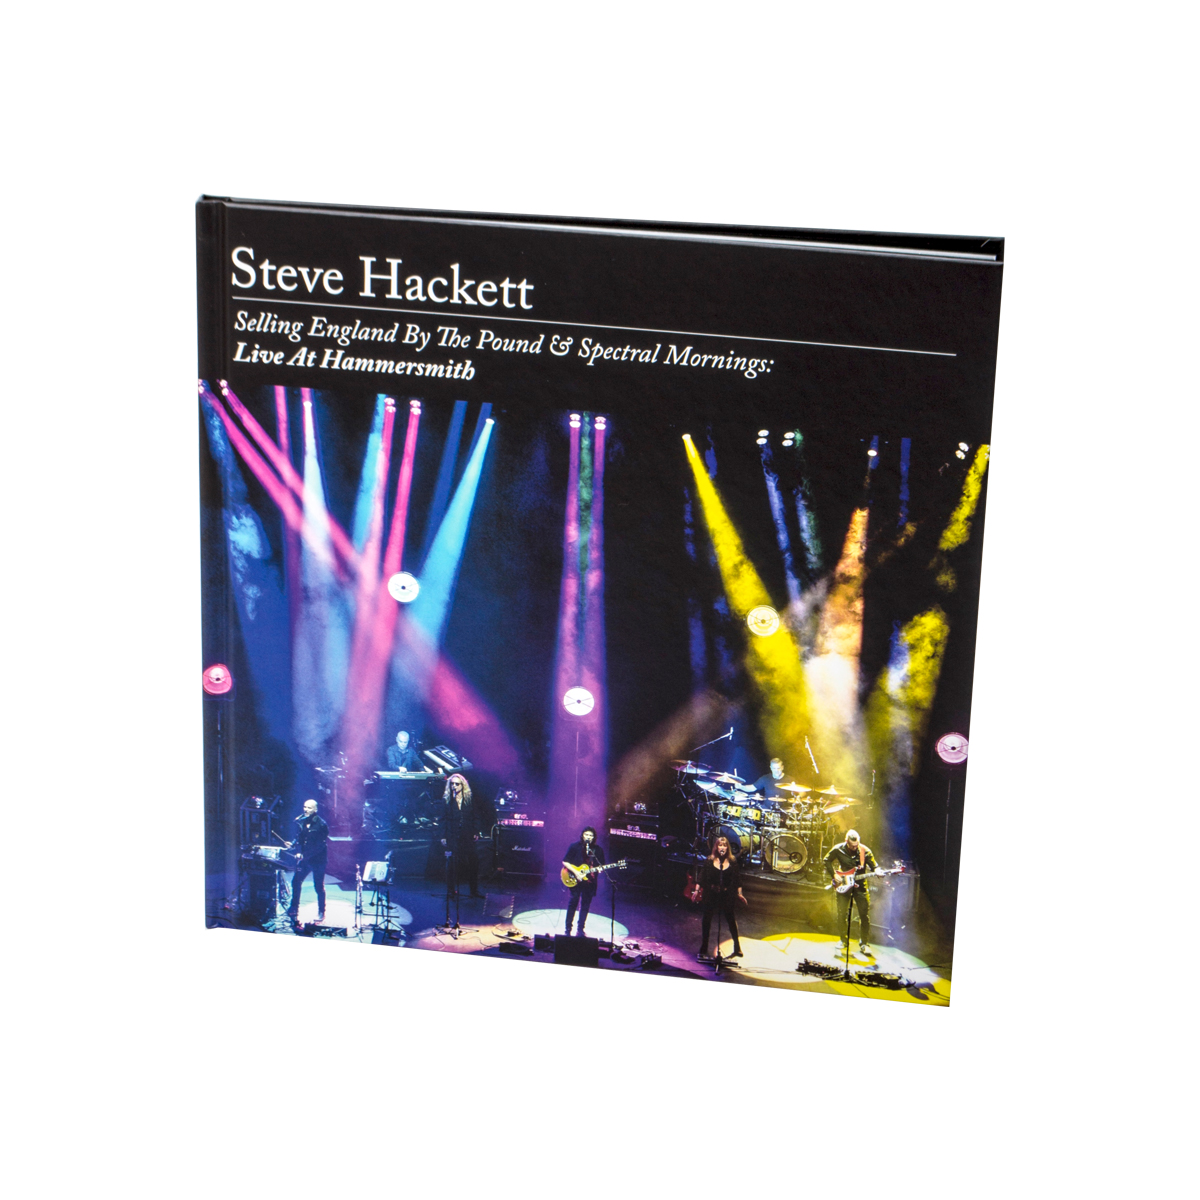 Steve Hackett - Selling England By The Pound & Spectral Mornings: Live At Hammersmith Jewelcase 2 CD + DVD + BluRay + Artbook + Digital Download